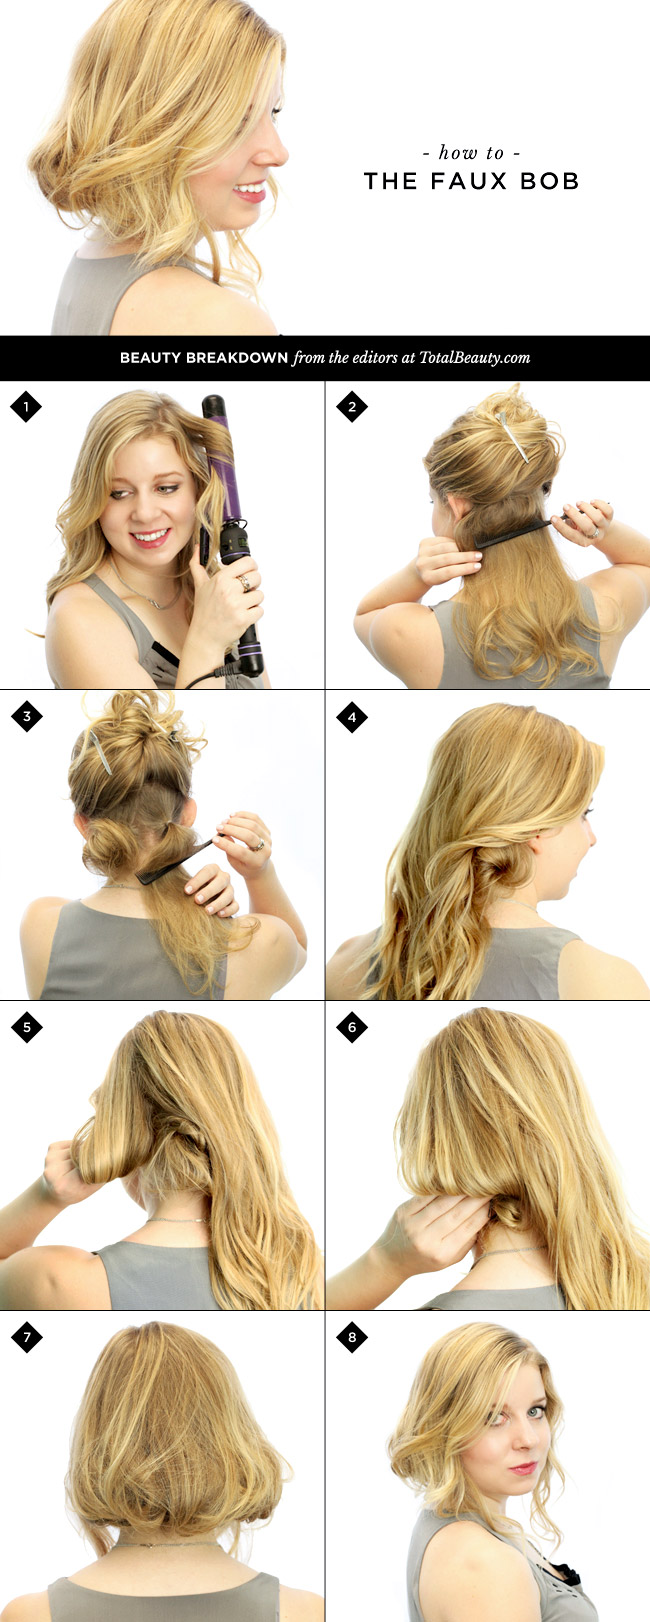 Quick Hairstyles For Short Hair Step By Step : Easy and Fast DIY Hairstyles Tutorials - Fashion Beauty News